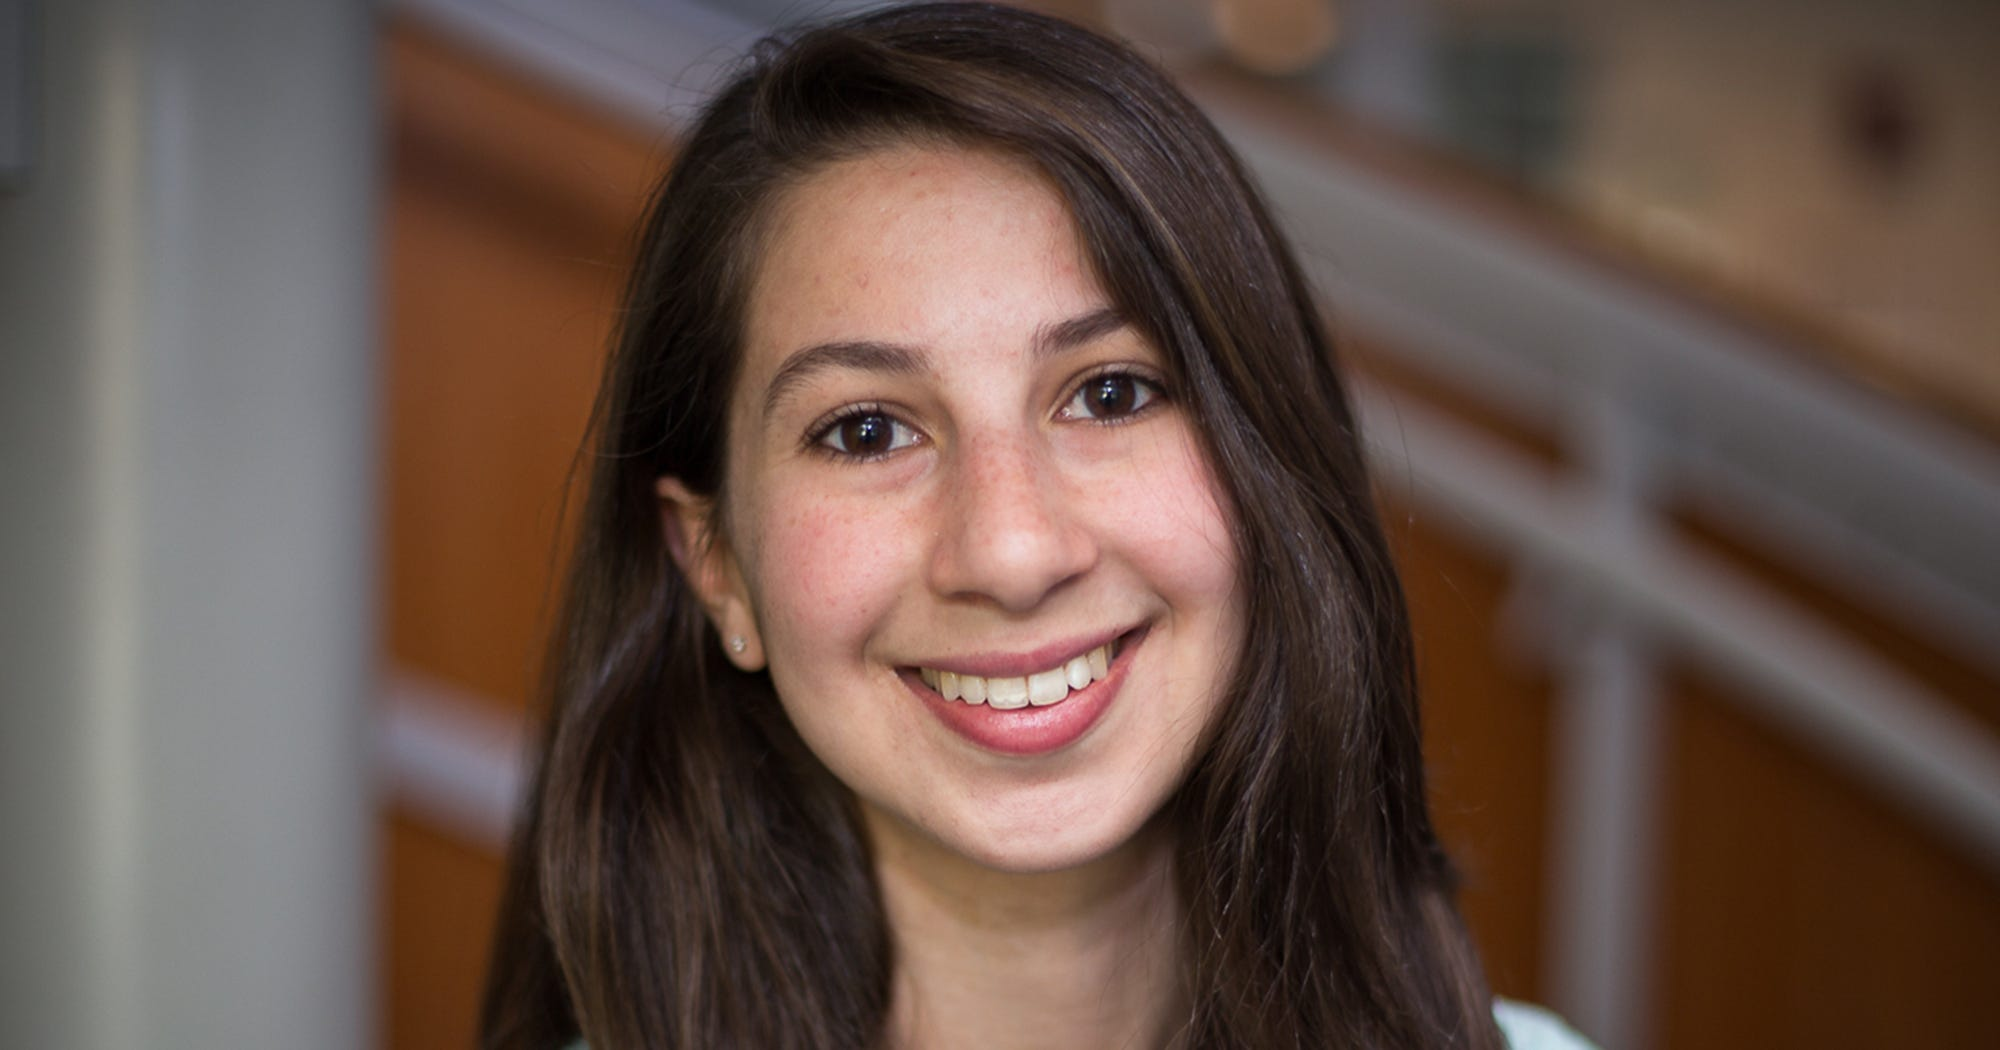 Meet Katie Bouman, The Young Woman Behind The First Image Of A Black Hole